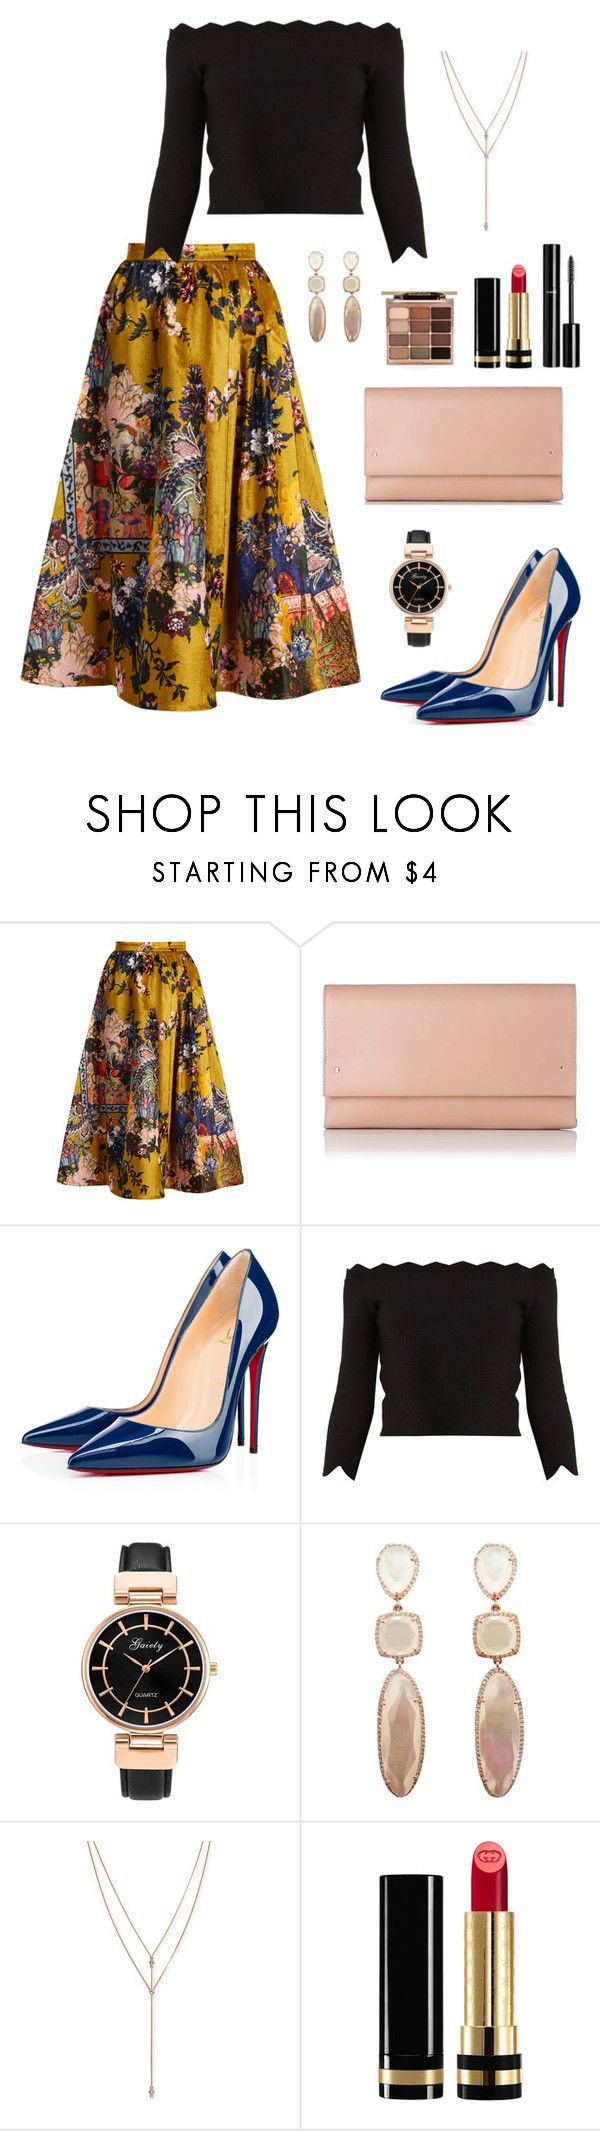 """Untitled #348"" by bajka2468 on Polyvore featuring Erdem, L.K.Bennett, Christian Louboutin, Alexander McQueen, Vince Camuto, Gucci, Chanel and Stila"